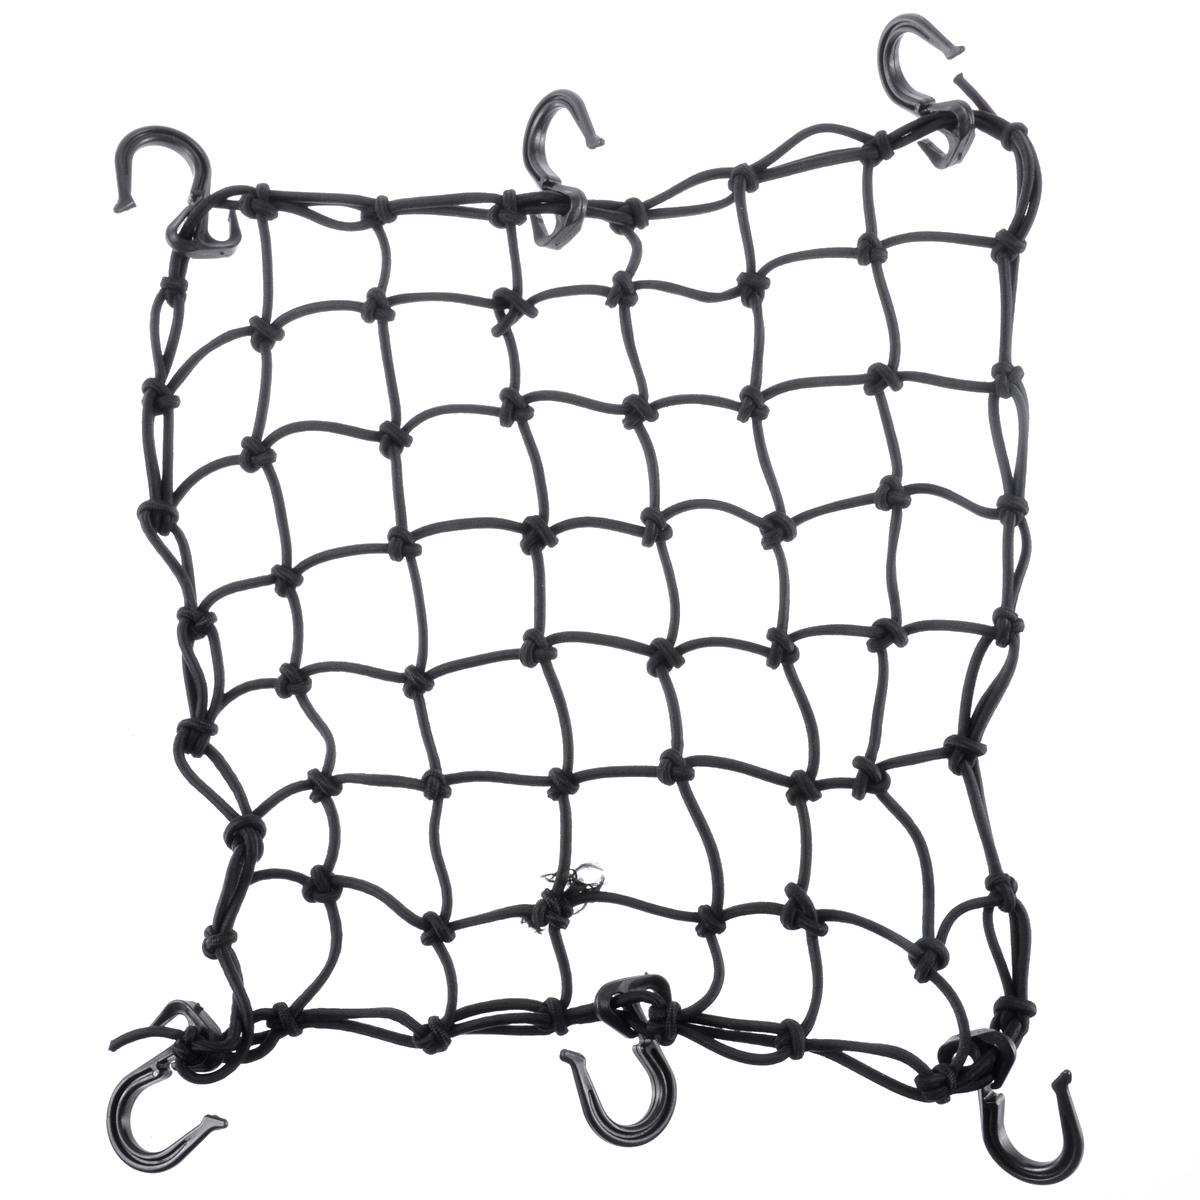 """1pc Black 42x42cm Latex Cargo Net Featuring 6 Adjustable Hooks & Tight 2""""x2"""" Mesh For Motorcycle Helmet Luggage Cargo Oil Tanker"""